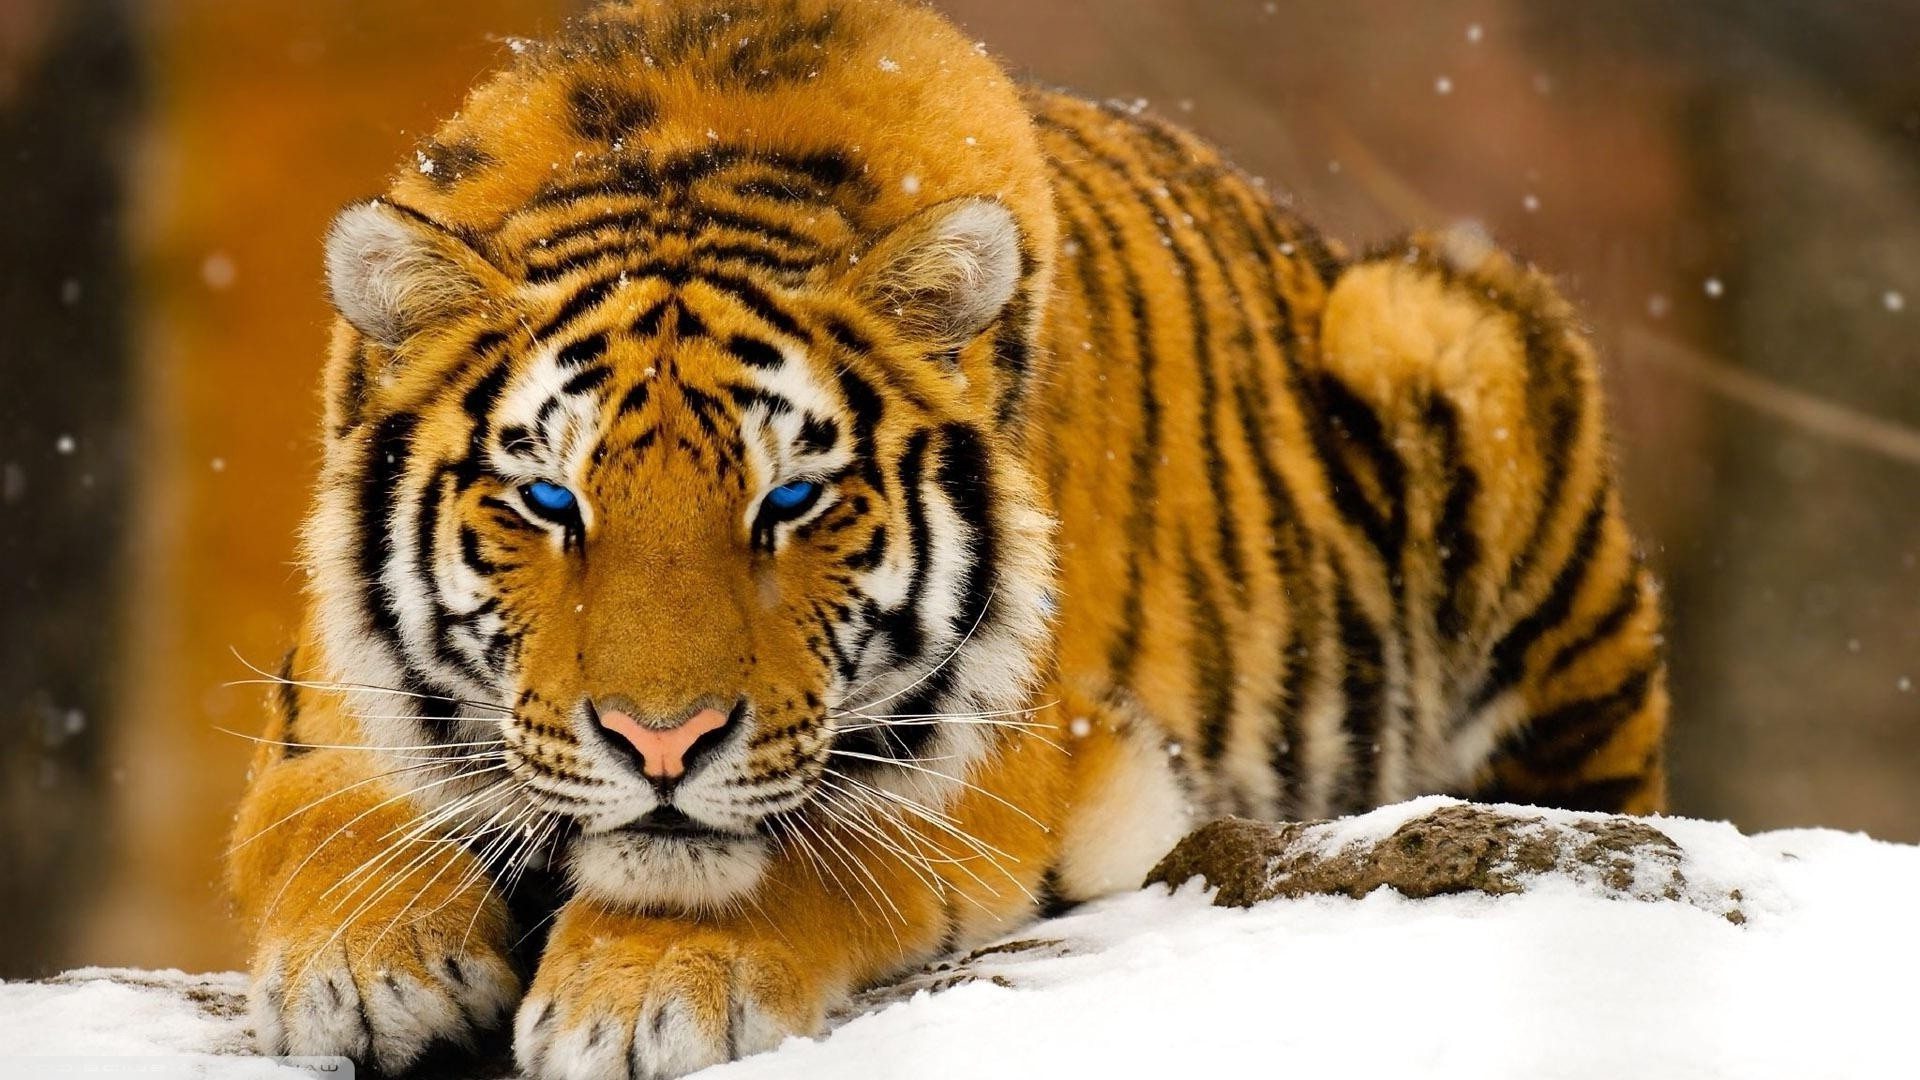 1920x1080 animals, Tiger, Big Cats Wallpapers HD / Desktop and Mobile Backgrounds